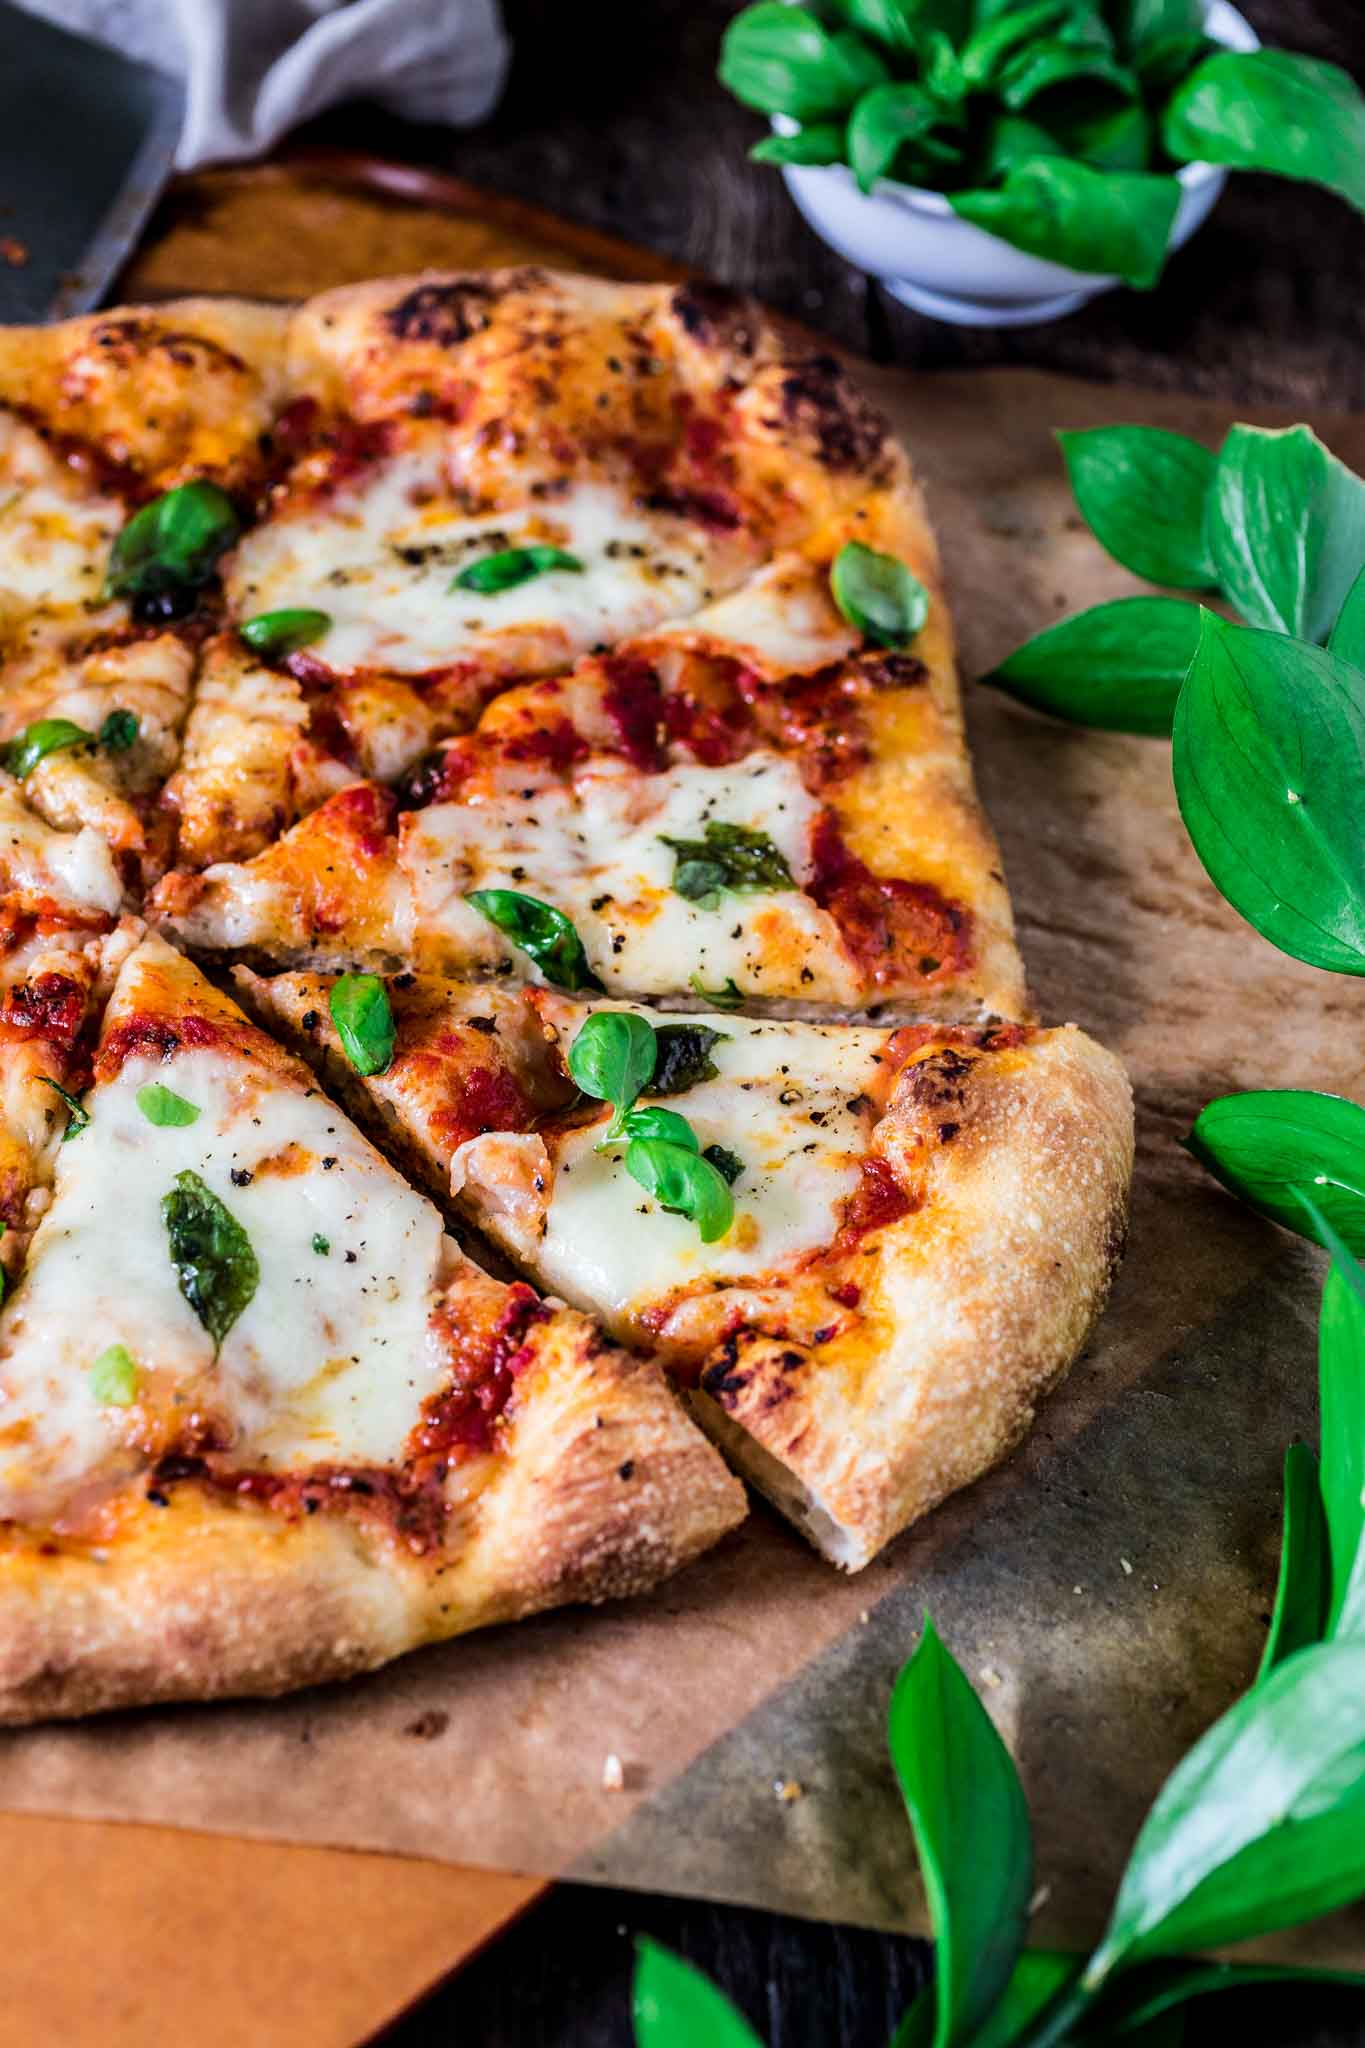 Classic Pizza Margherita | www.oliviascuisine.com | This delicious Margherita pizza is proof that some of the best things in life are the simplest. Only a few fresh ingredients create this iconic pizza from Naples. (In partnership with @Mezzetta.)